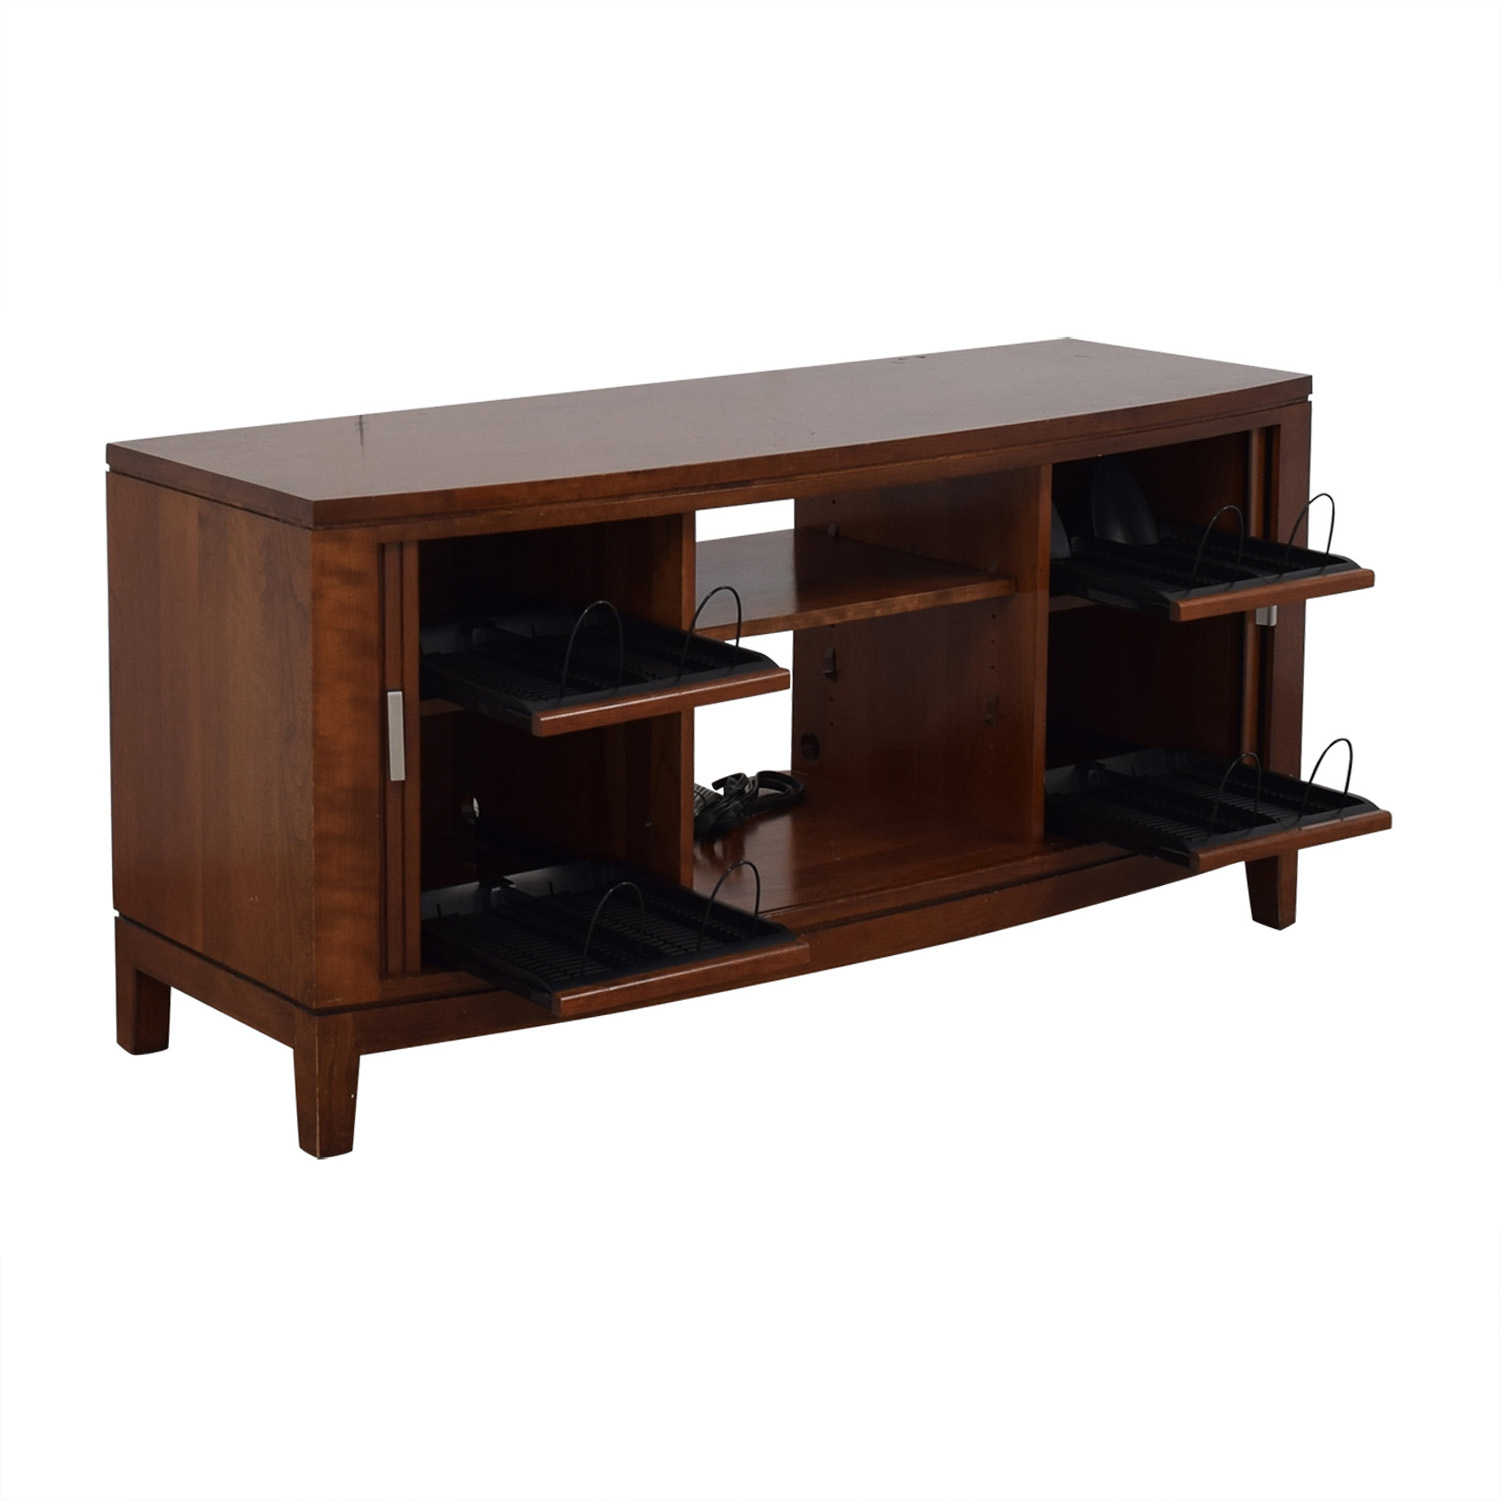 Media Console With Sliding Doors / Media Units